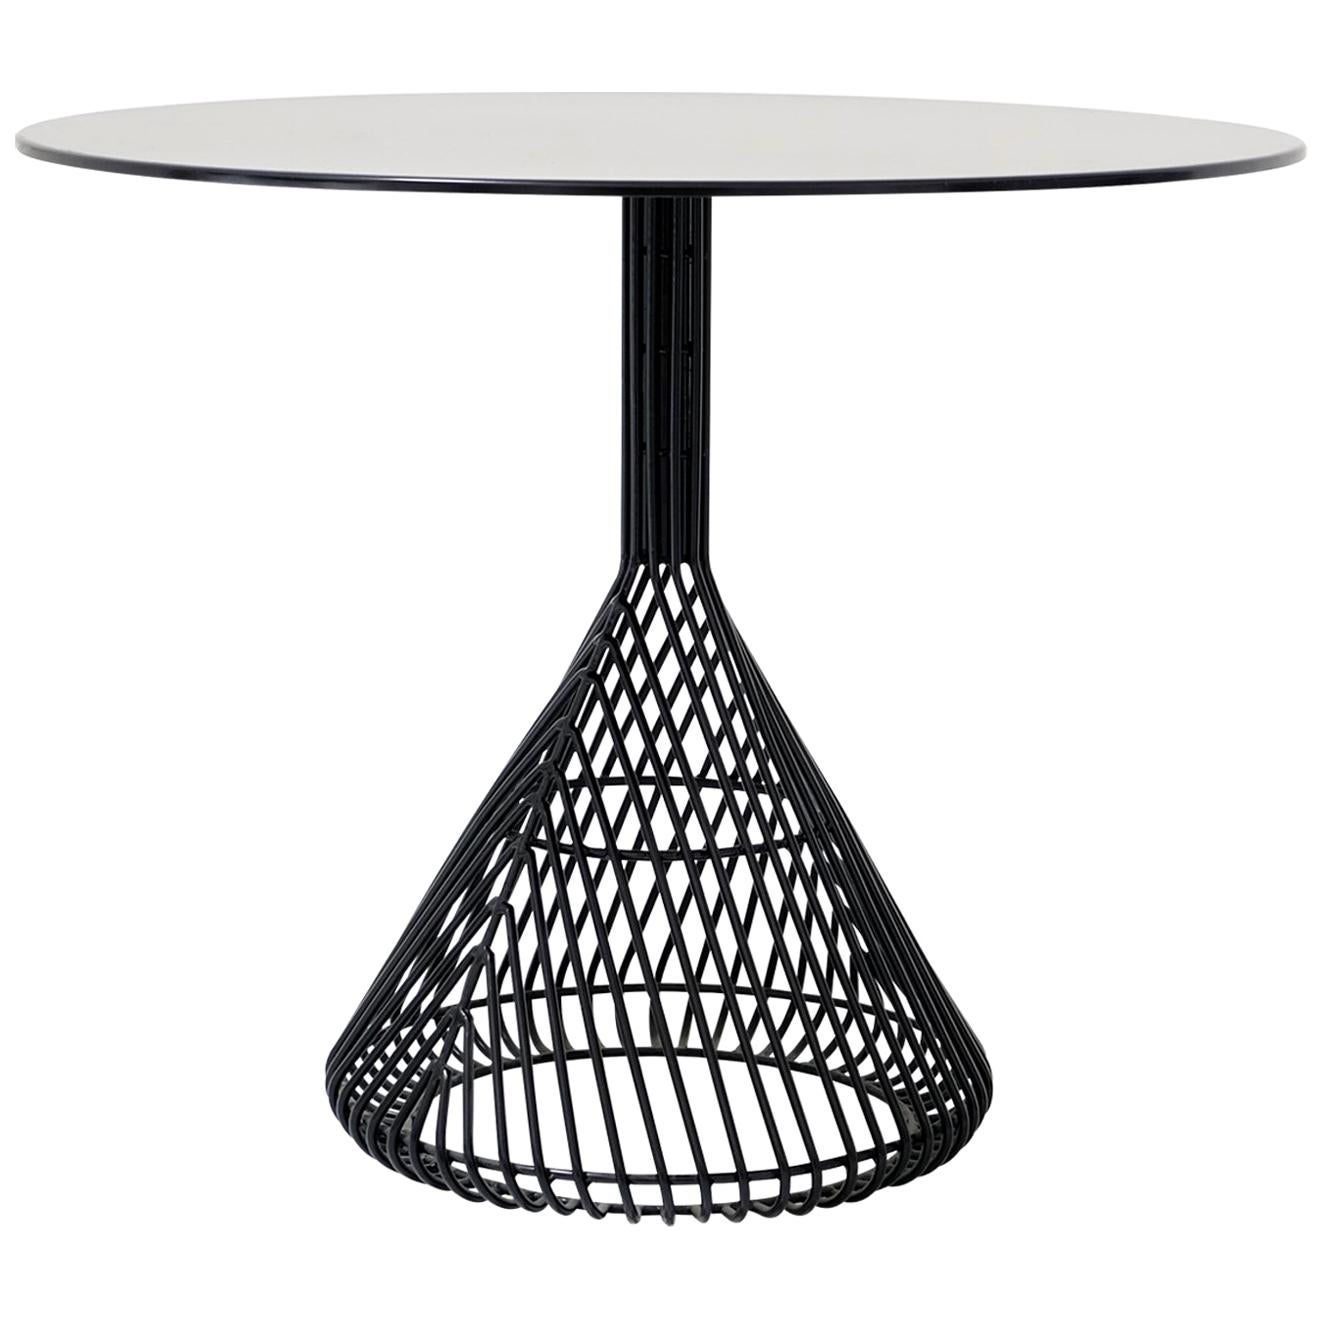 Modern Bistro Table, Wire Dining Table by Bend Goods in Black with Metal Top